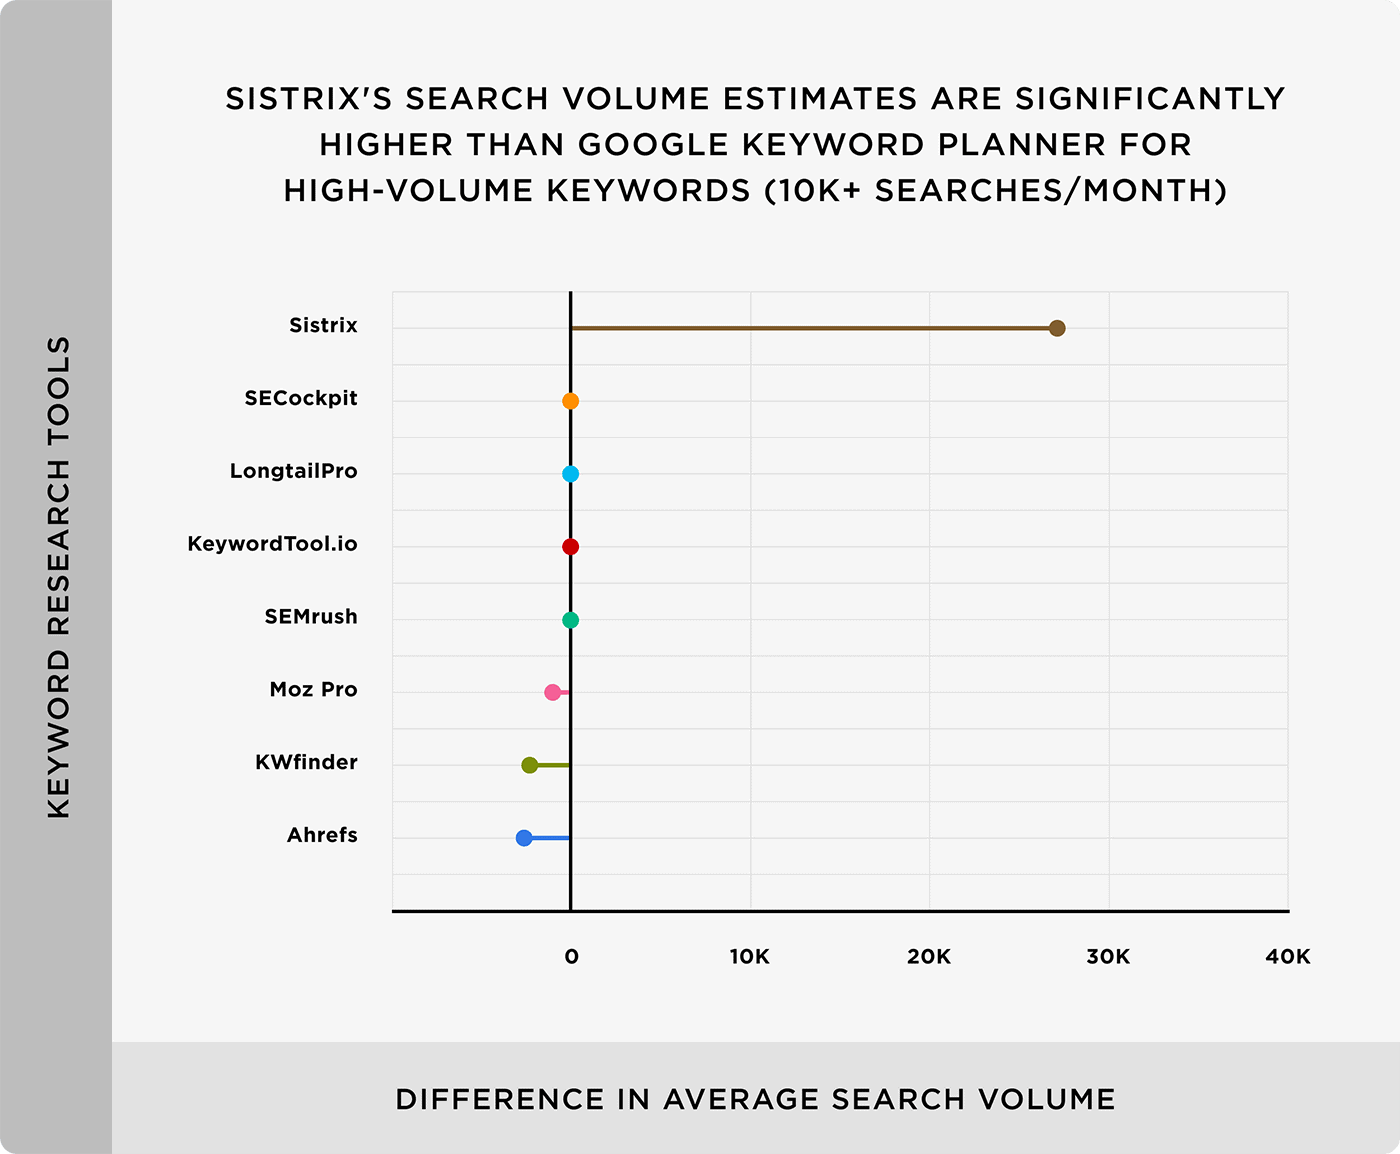 Sistrix's search volume estimates are significantly higher than Google Keyword Planner for high-volume keywords (10k+ searches/month)